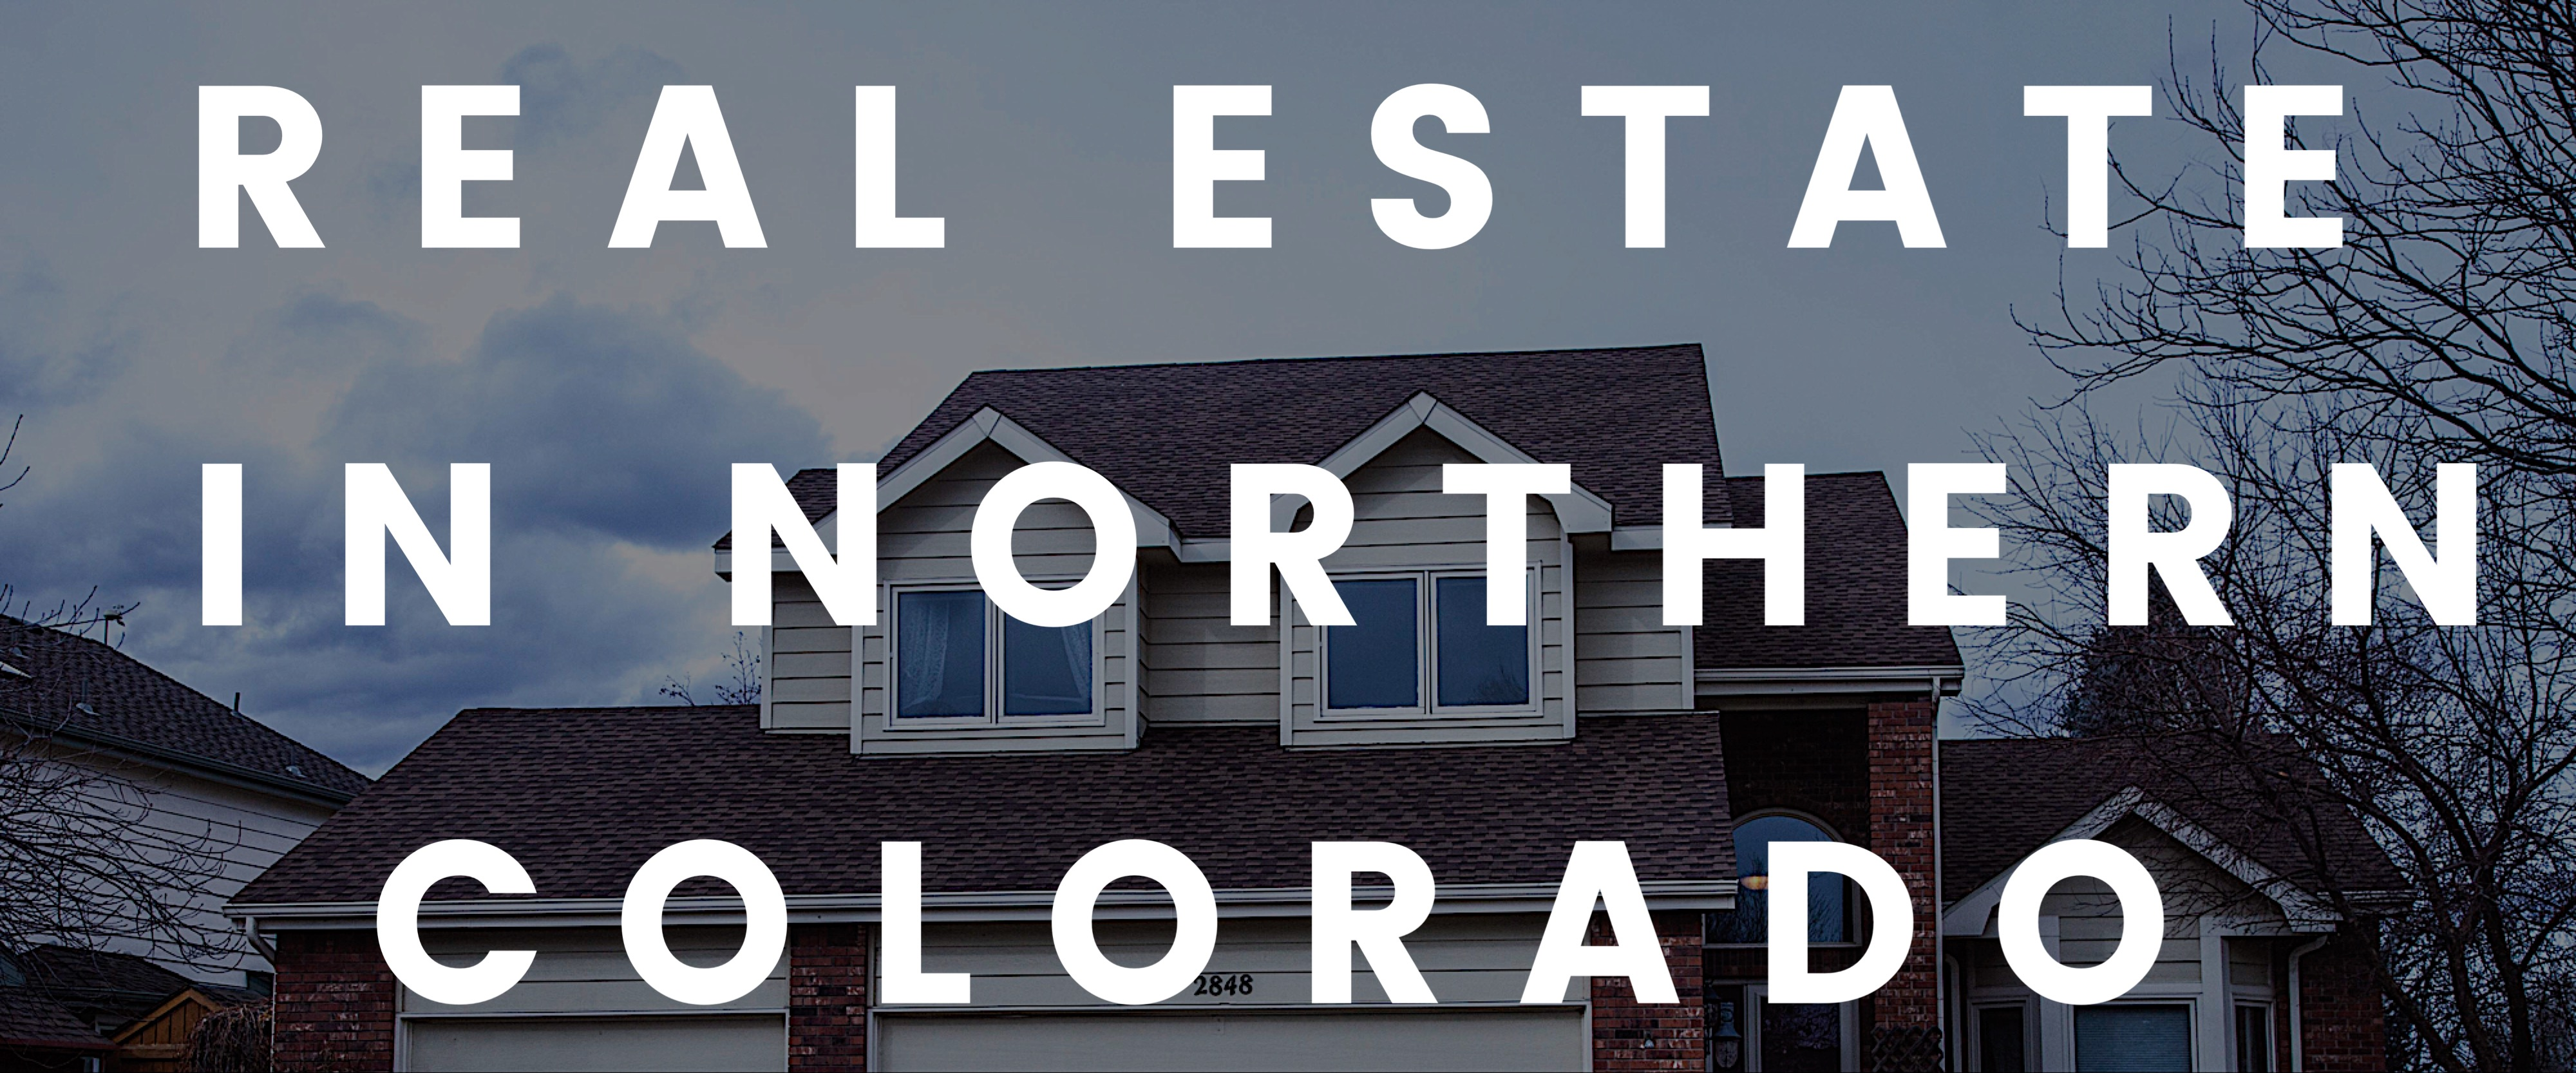 Real Estate and homes for sale in Northern Colorado, Fort Collins, Loveland, Greeley, Milliken, Johnstown, Eaton, Evans, Timnath, Severance, Windsor, Wellington, Laporte, Livermore, Red Feather Lakes, Longmont, Southeast fort collins, old town, new construction homes, FSBO, MLS, home search, Zillow